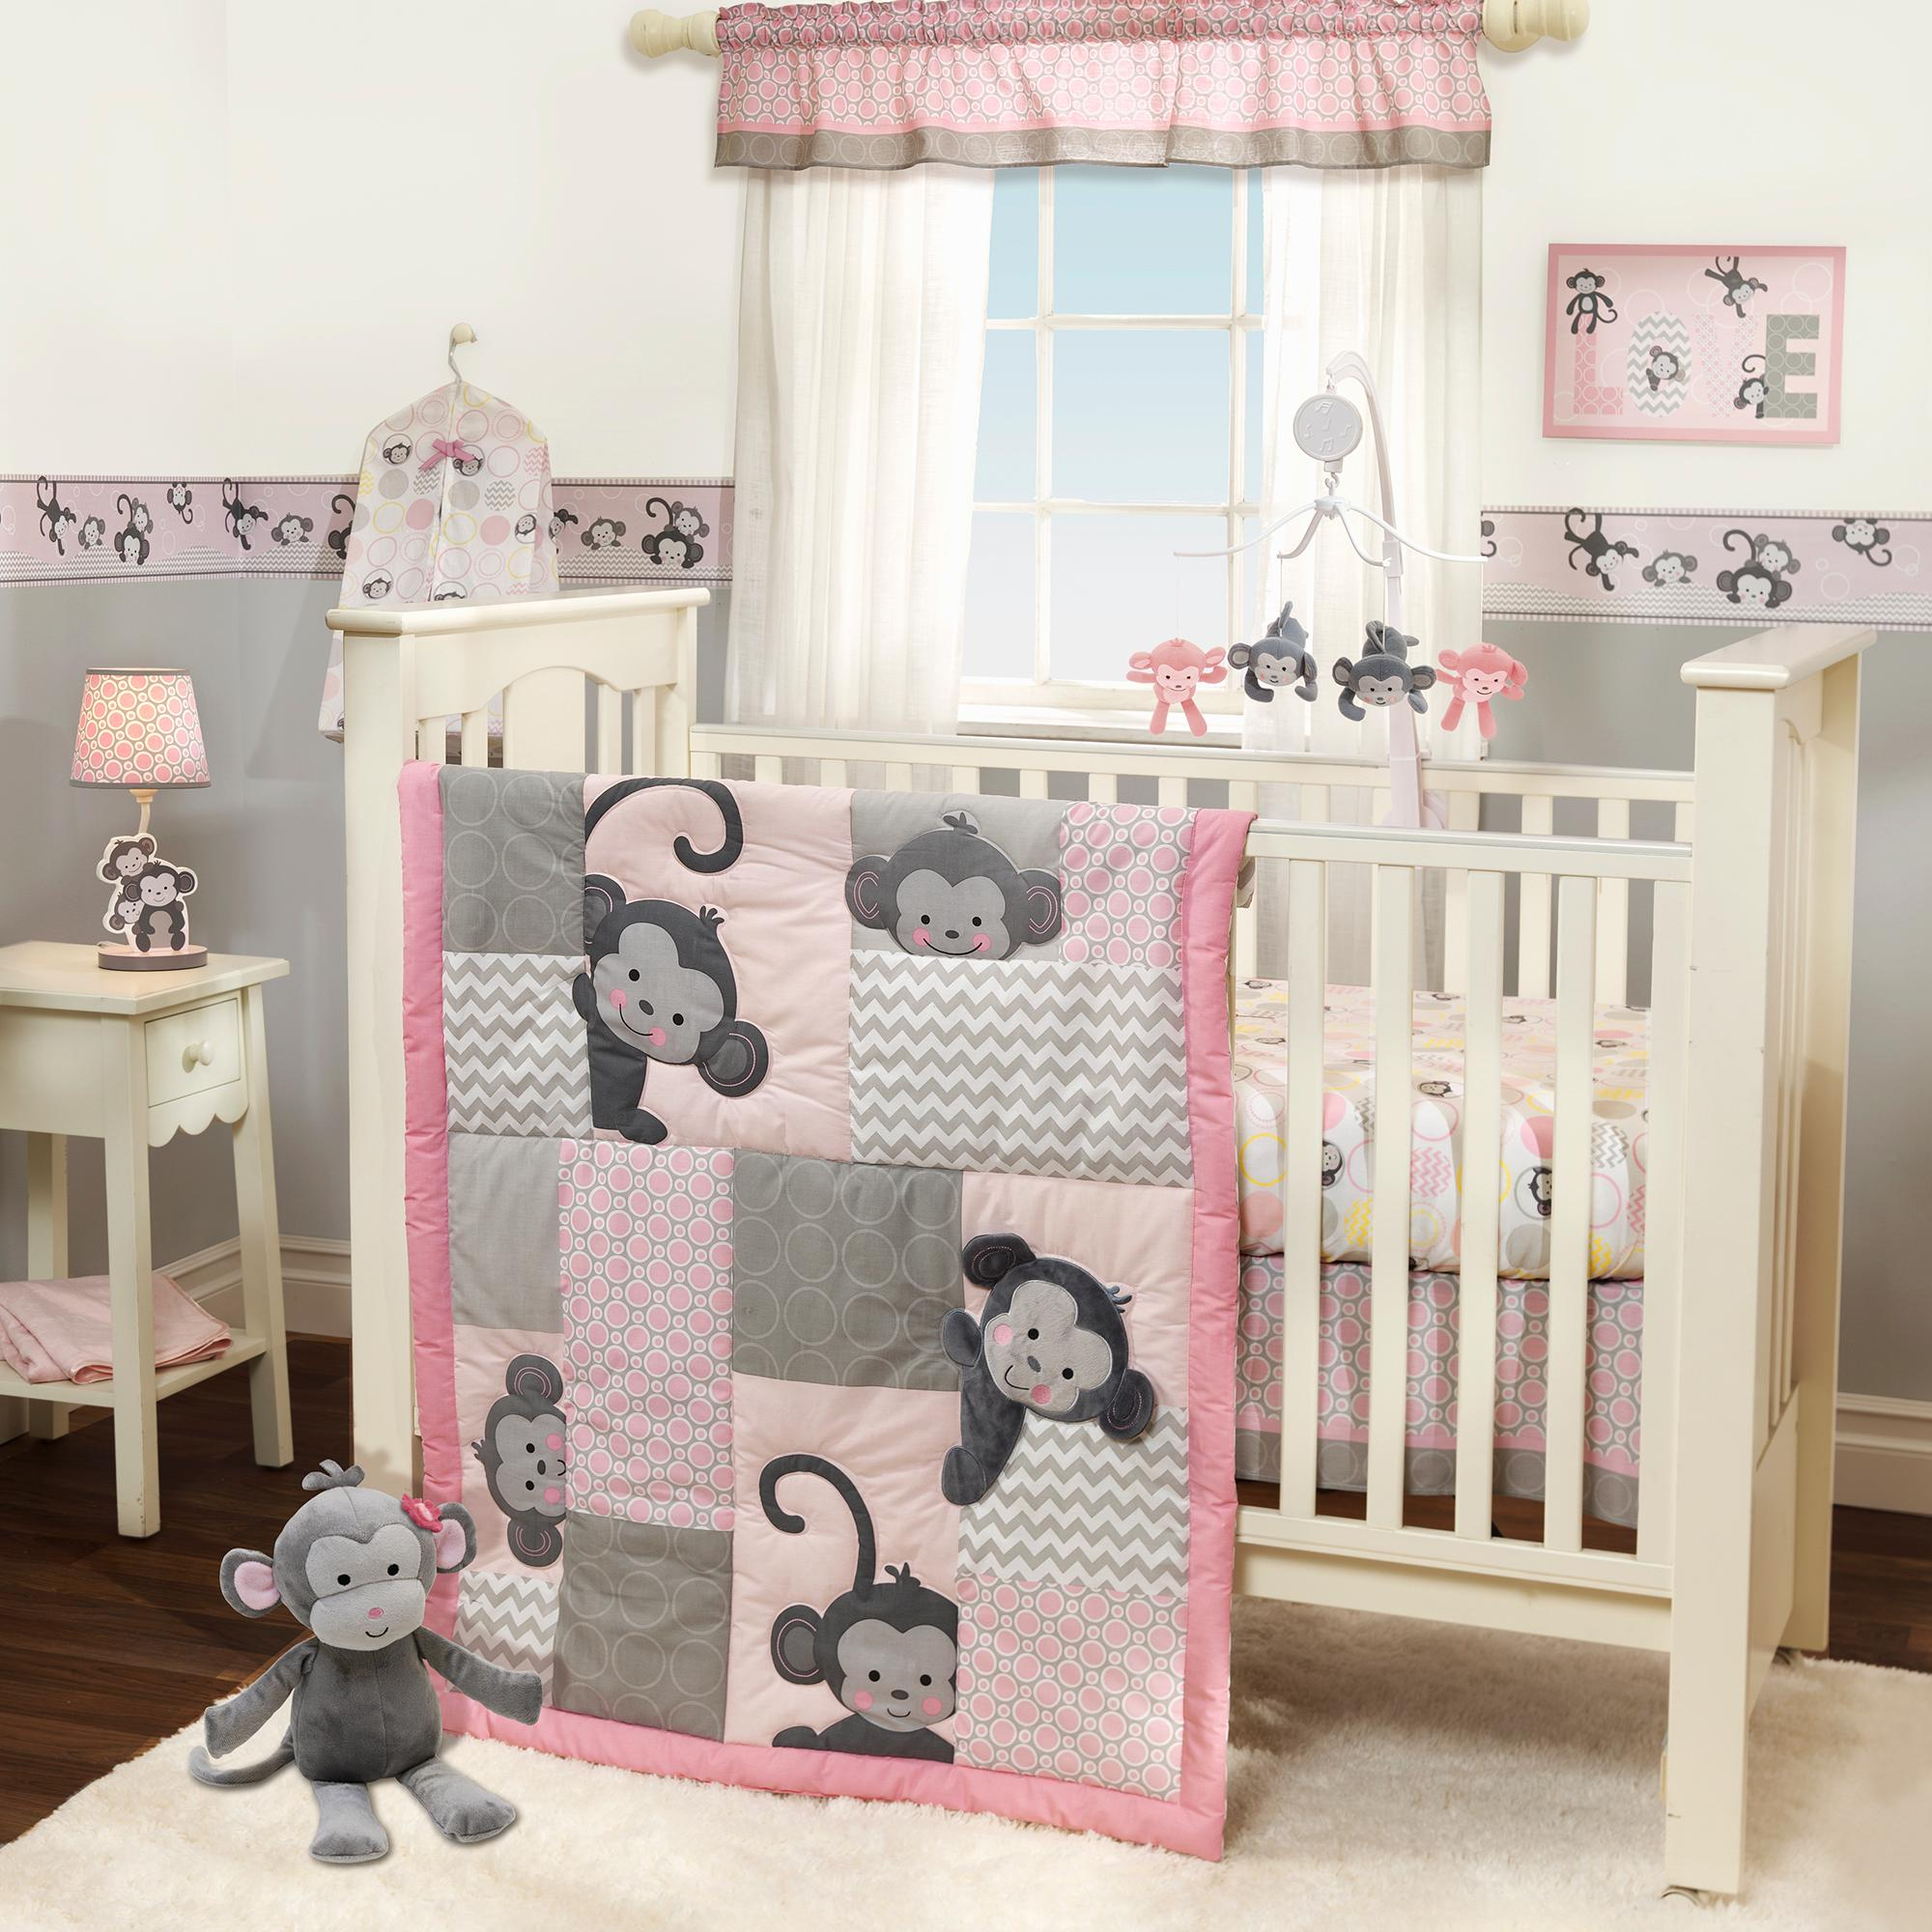 Decorate Your Little Oneu0027s Nursery In Comfort And Style With This Pinkie Crib  Bedding Set.